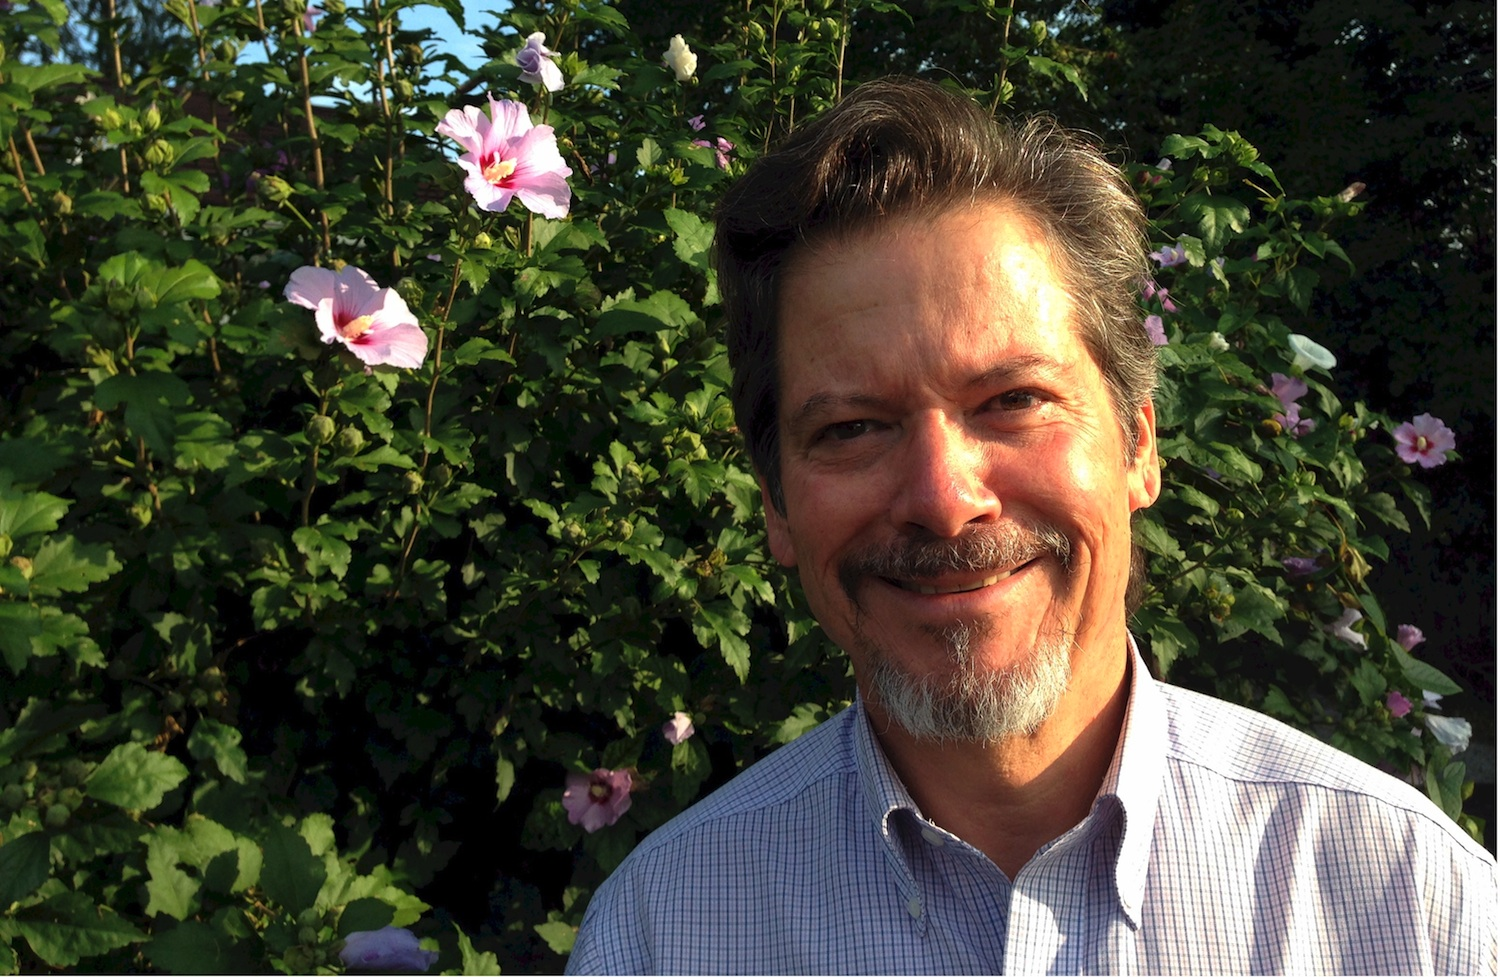 Jeff Oster, an Ohio-based podiatrist, launched MyFootShop.com in 1999.